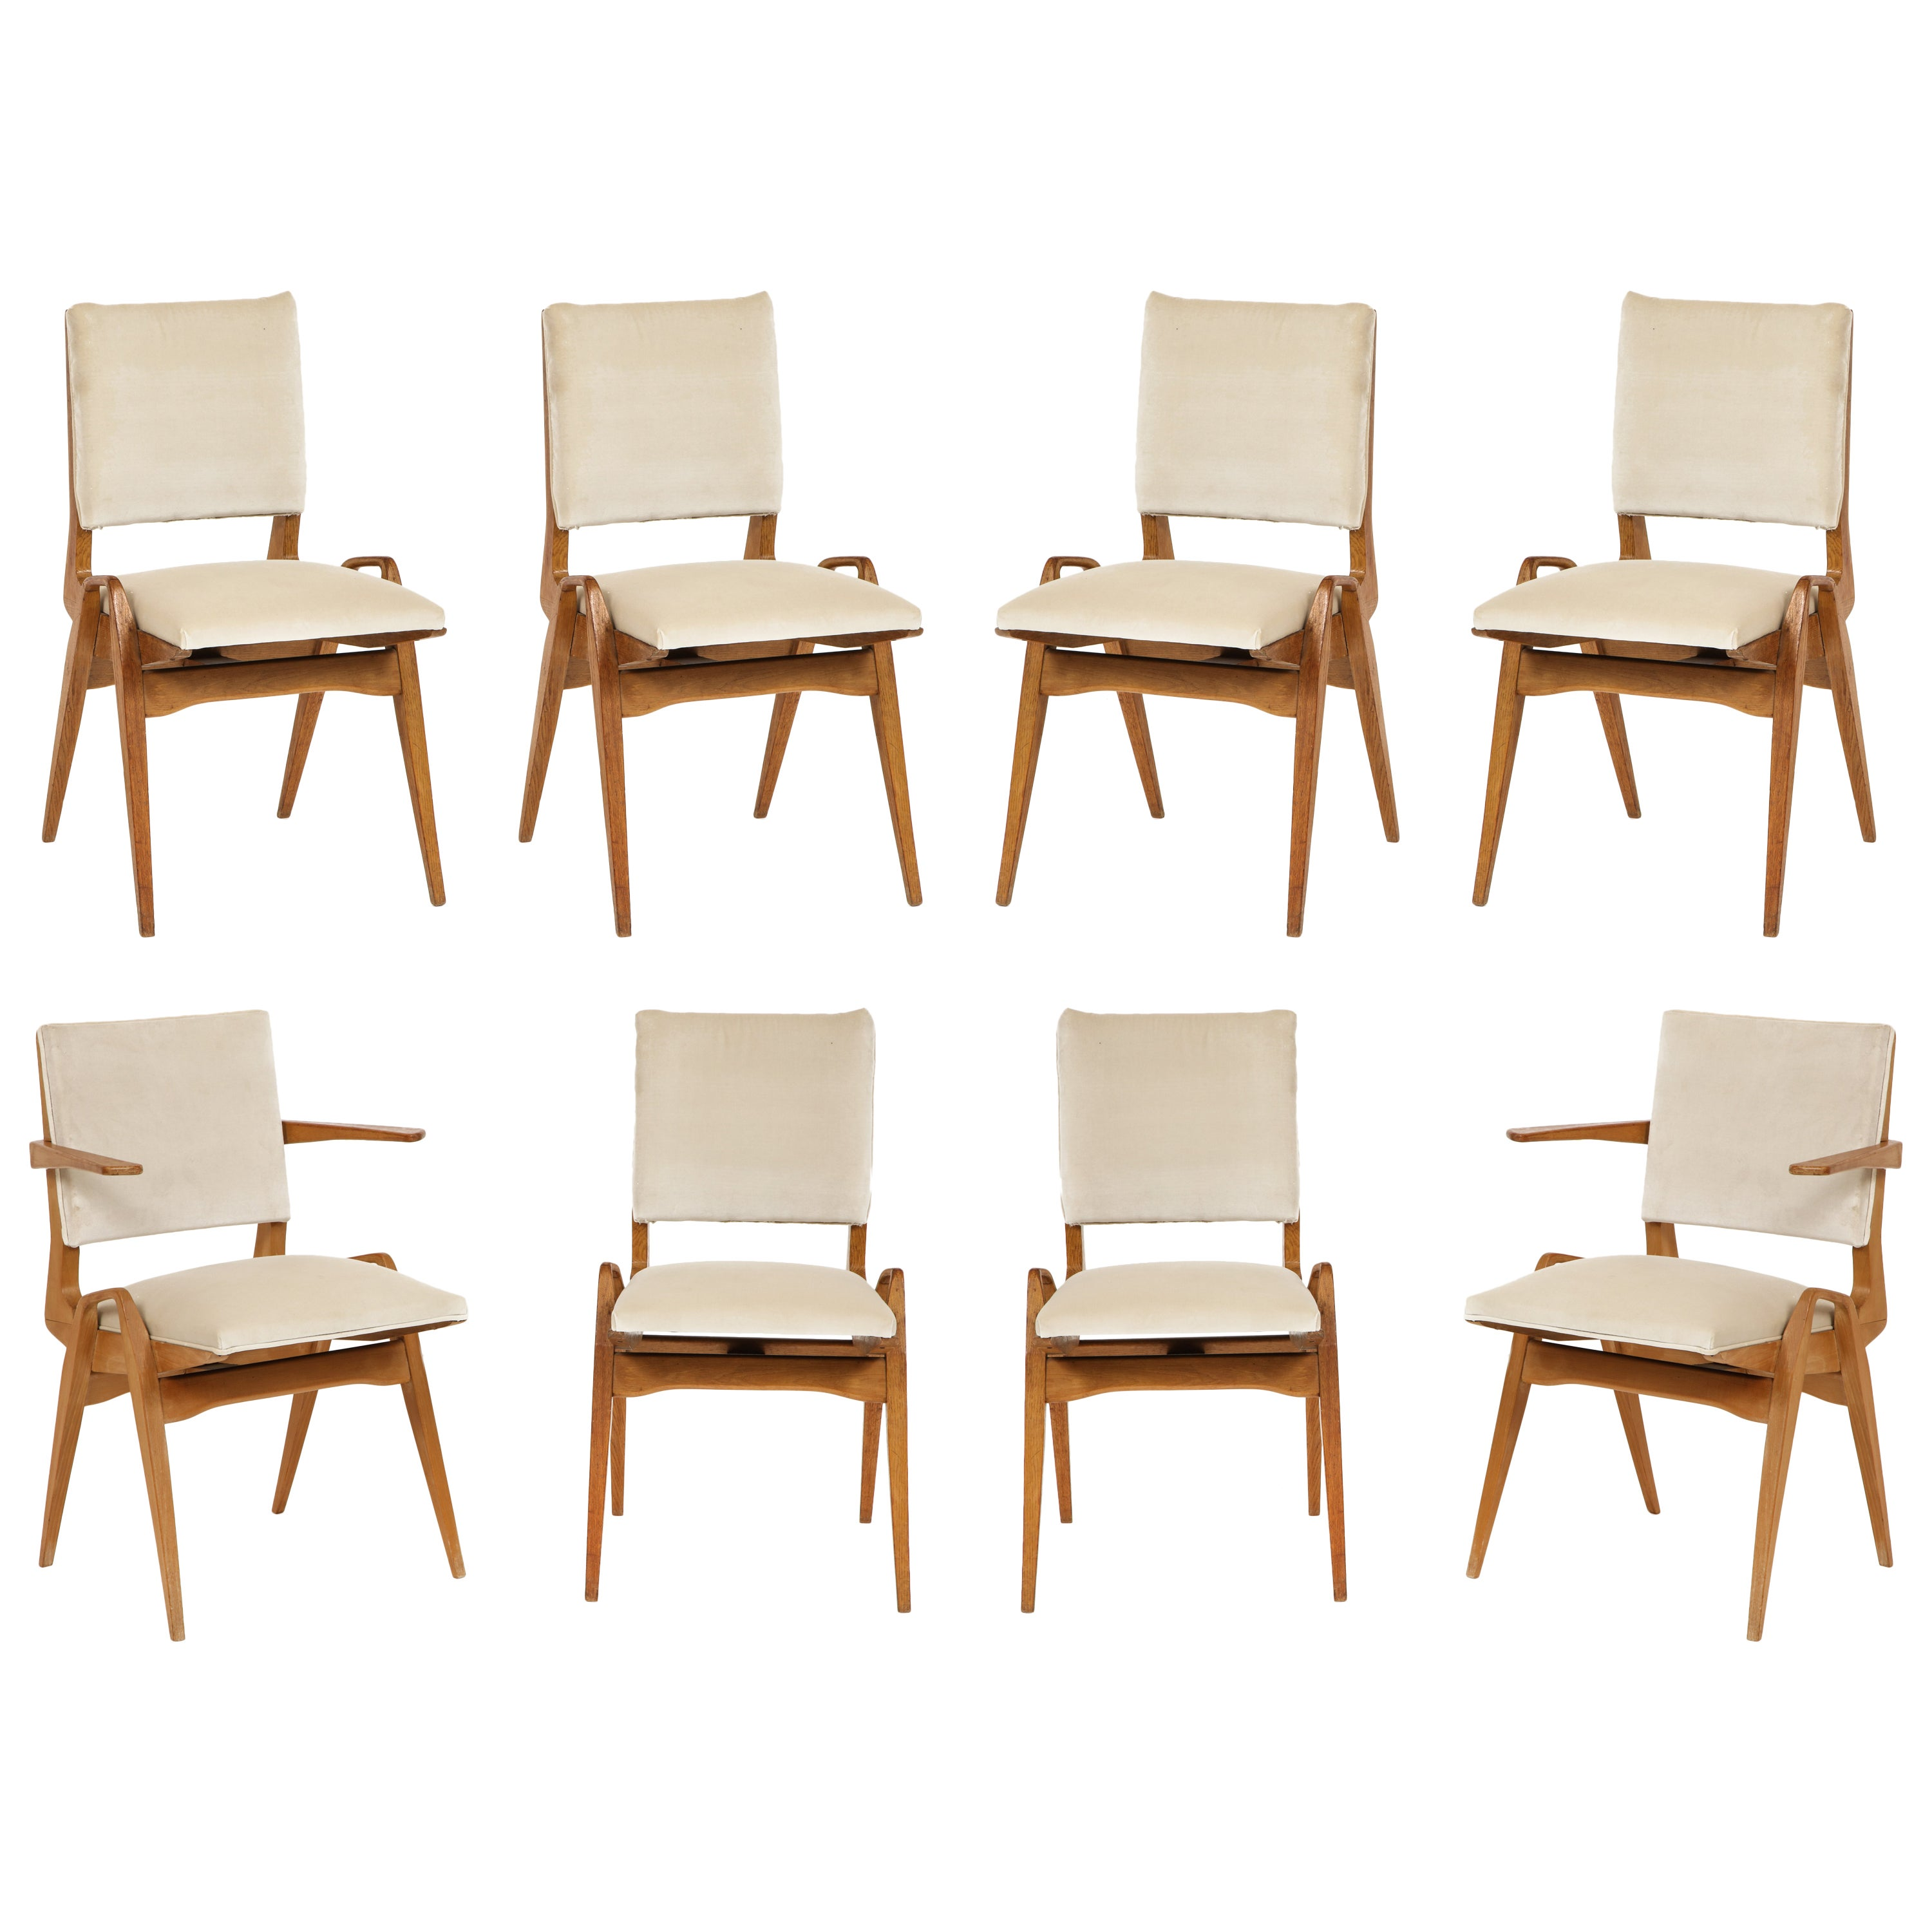 French Architectural Midcentury Dining Chairs White Velvet Wood